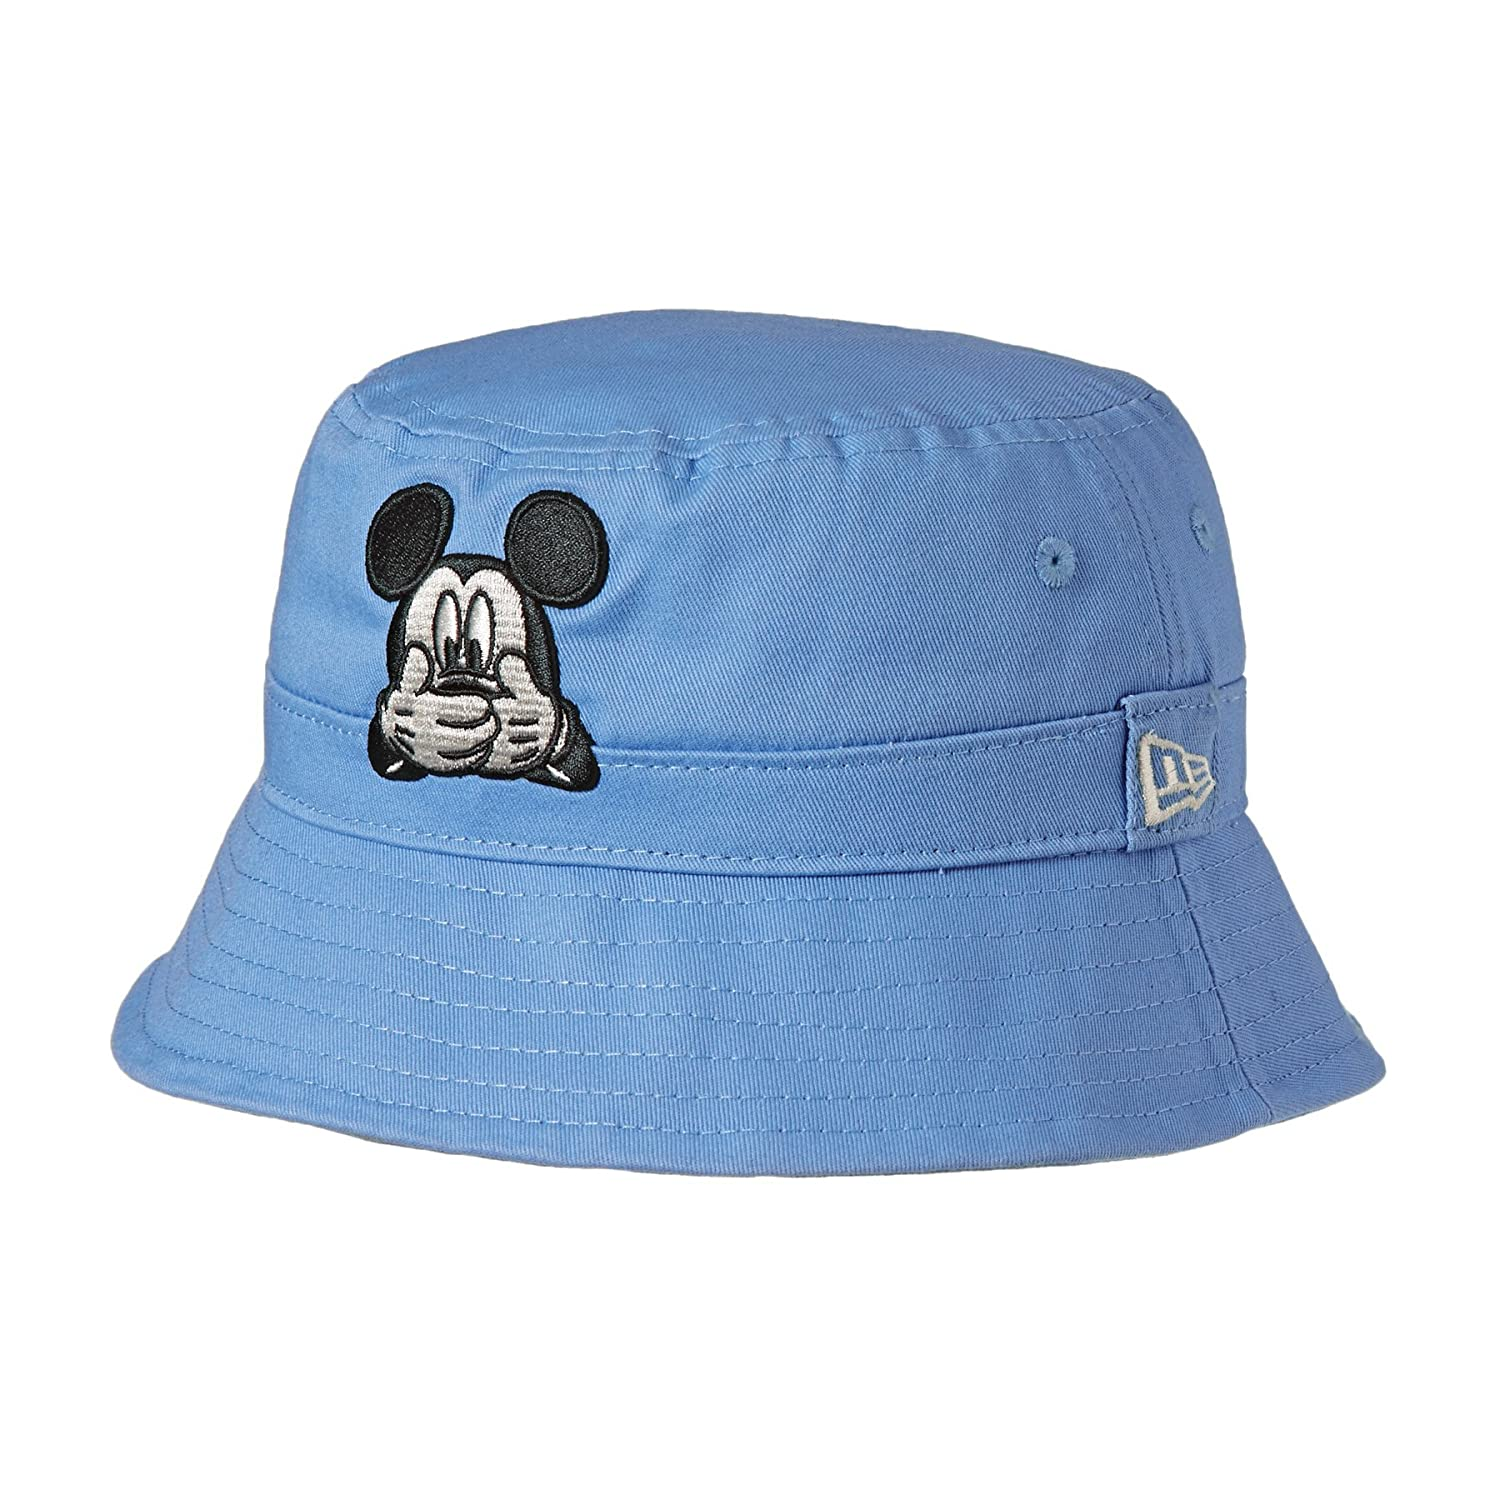 9aad2b18 ... spain new era baby minnie mouse bucket hat disney expression pink  amazon clothing 50a99 3dc57